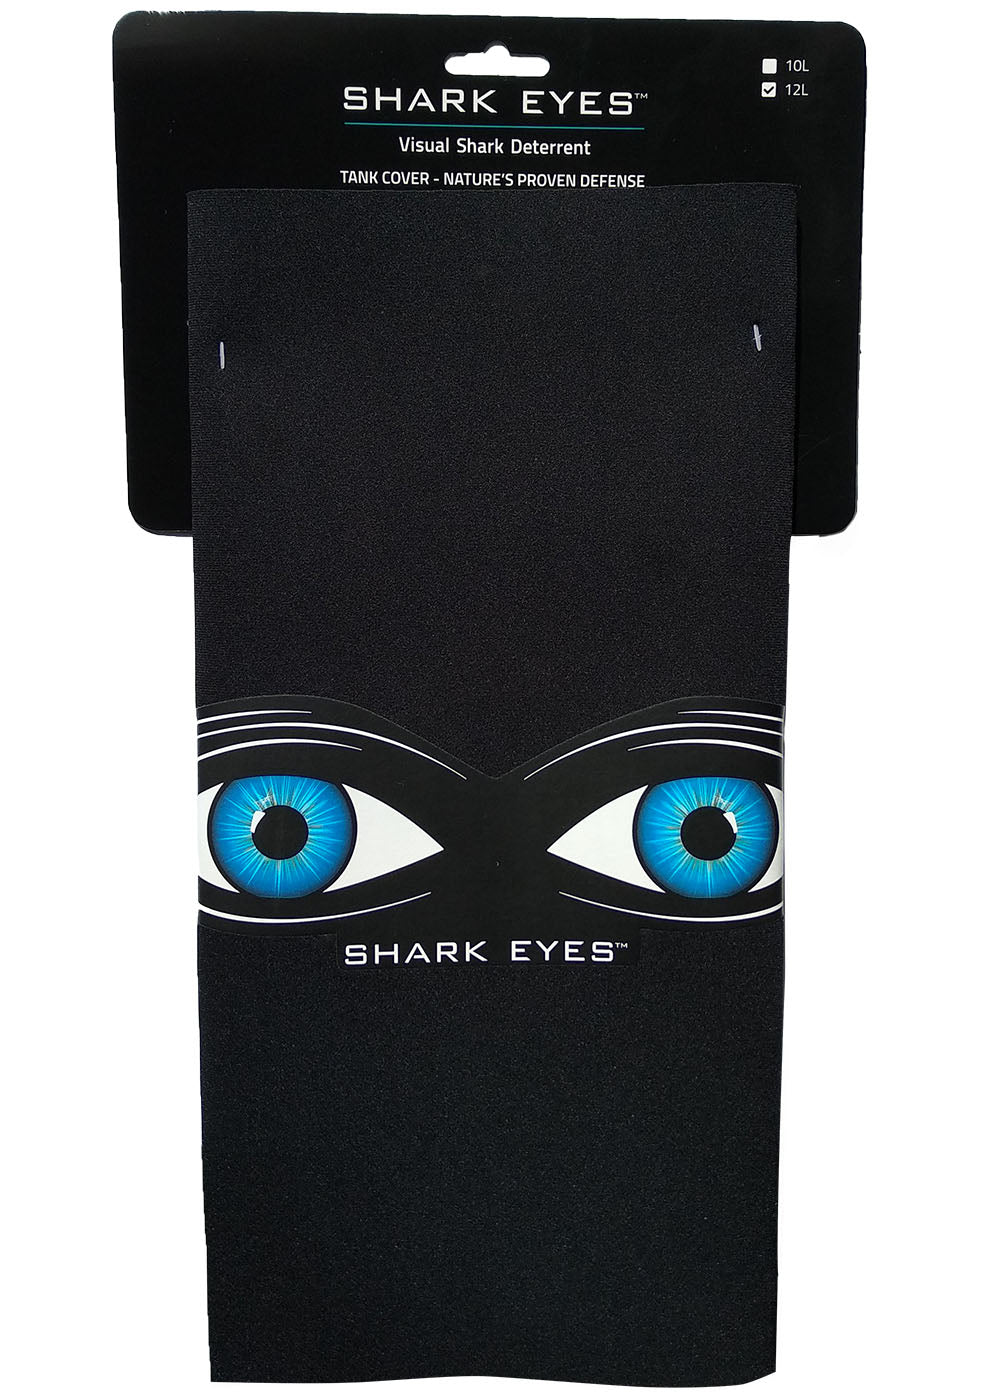 Shark Eyes Tank Cover